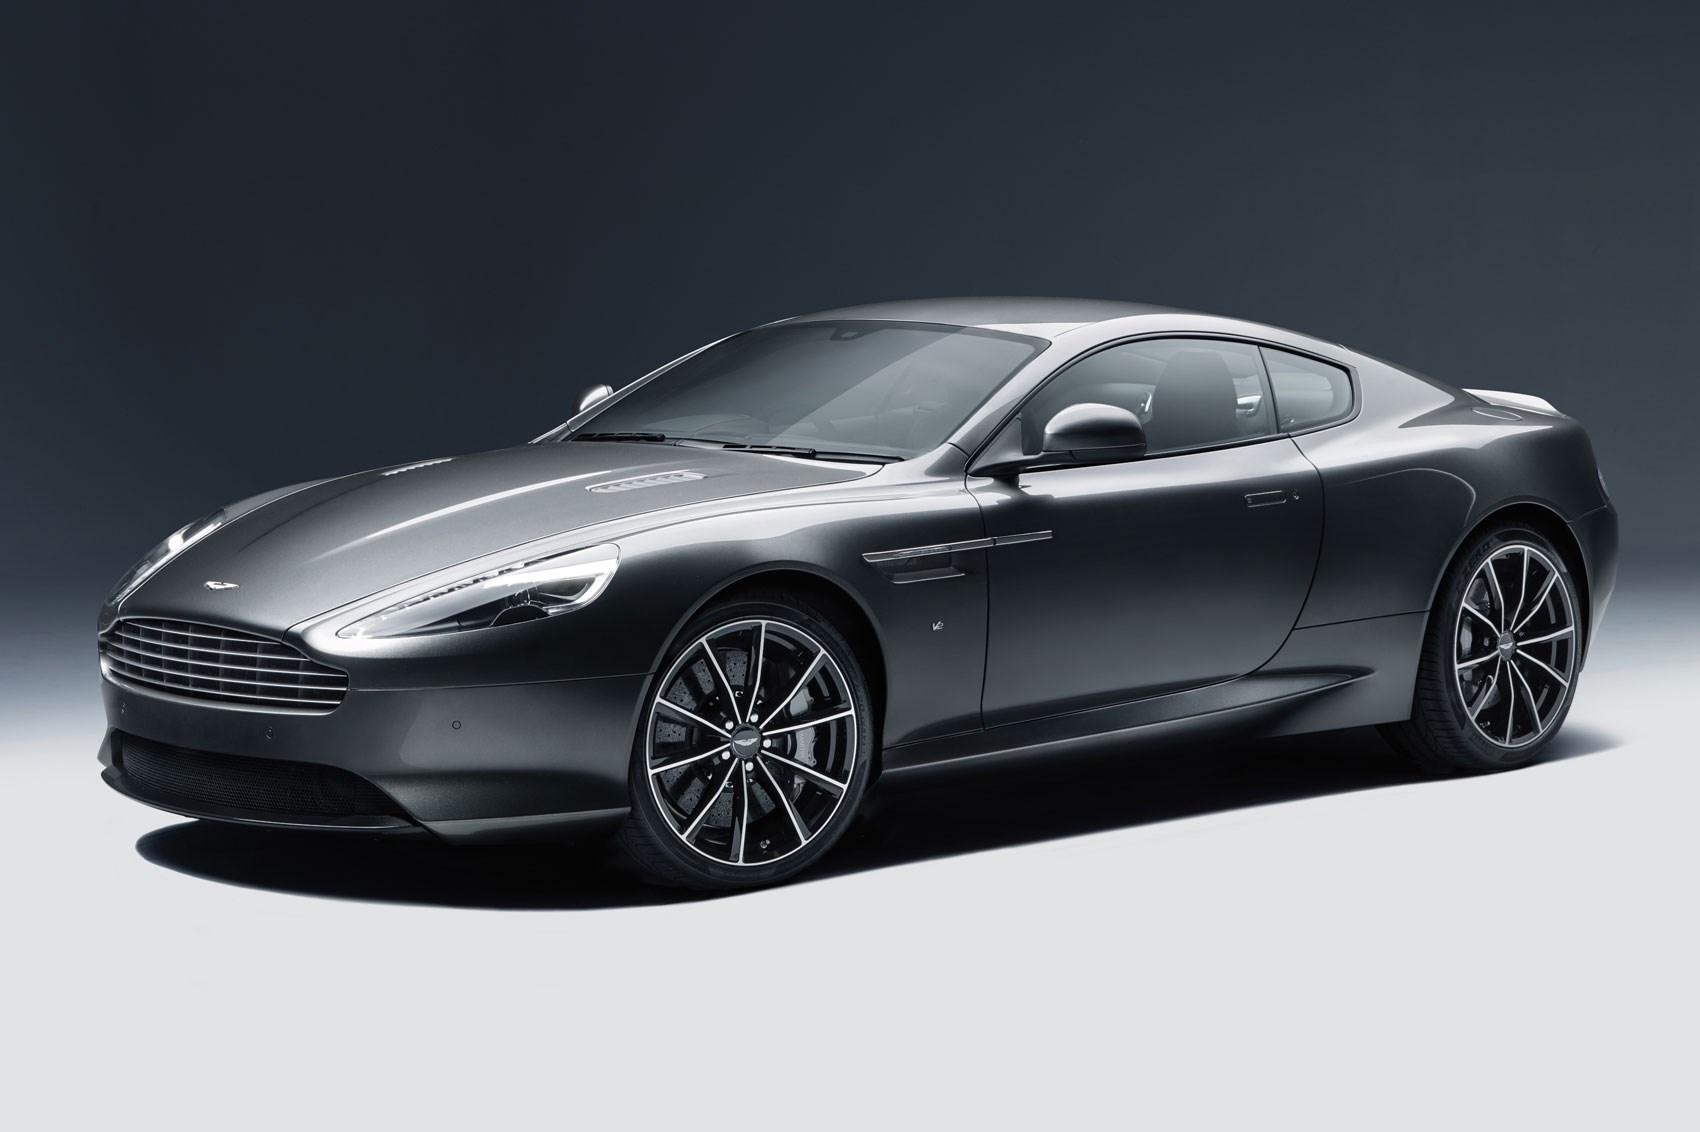 aston martin db9 gt 2015 a 540bhp final fling for the db9 by car magazine. Black Bedroom Furniture Sets. Home Design Ideas